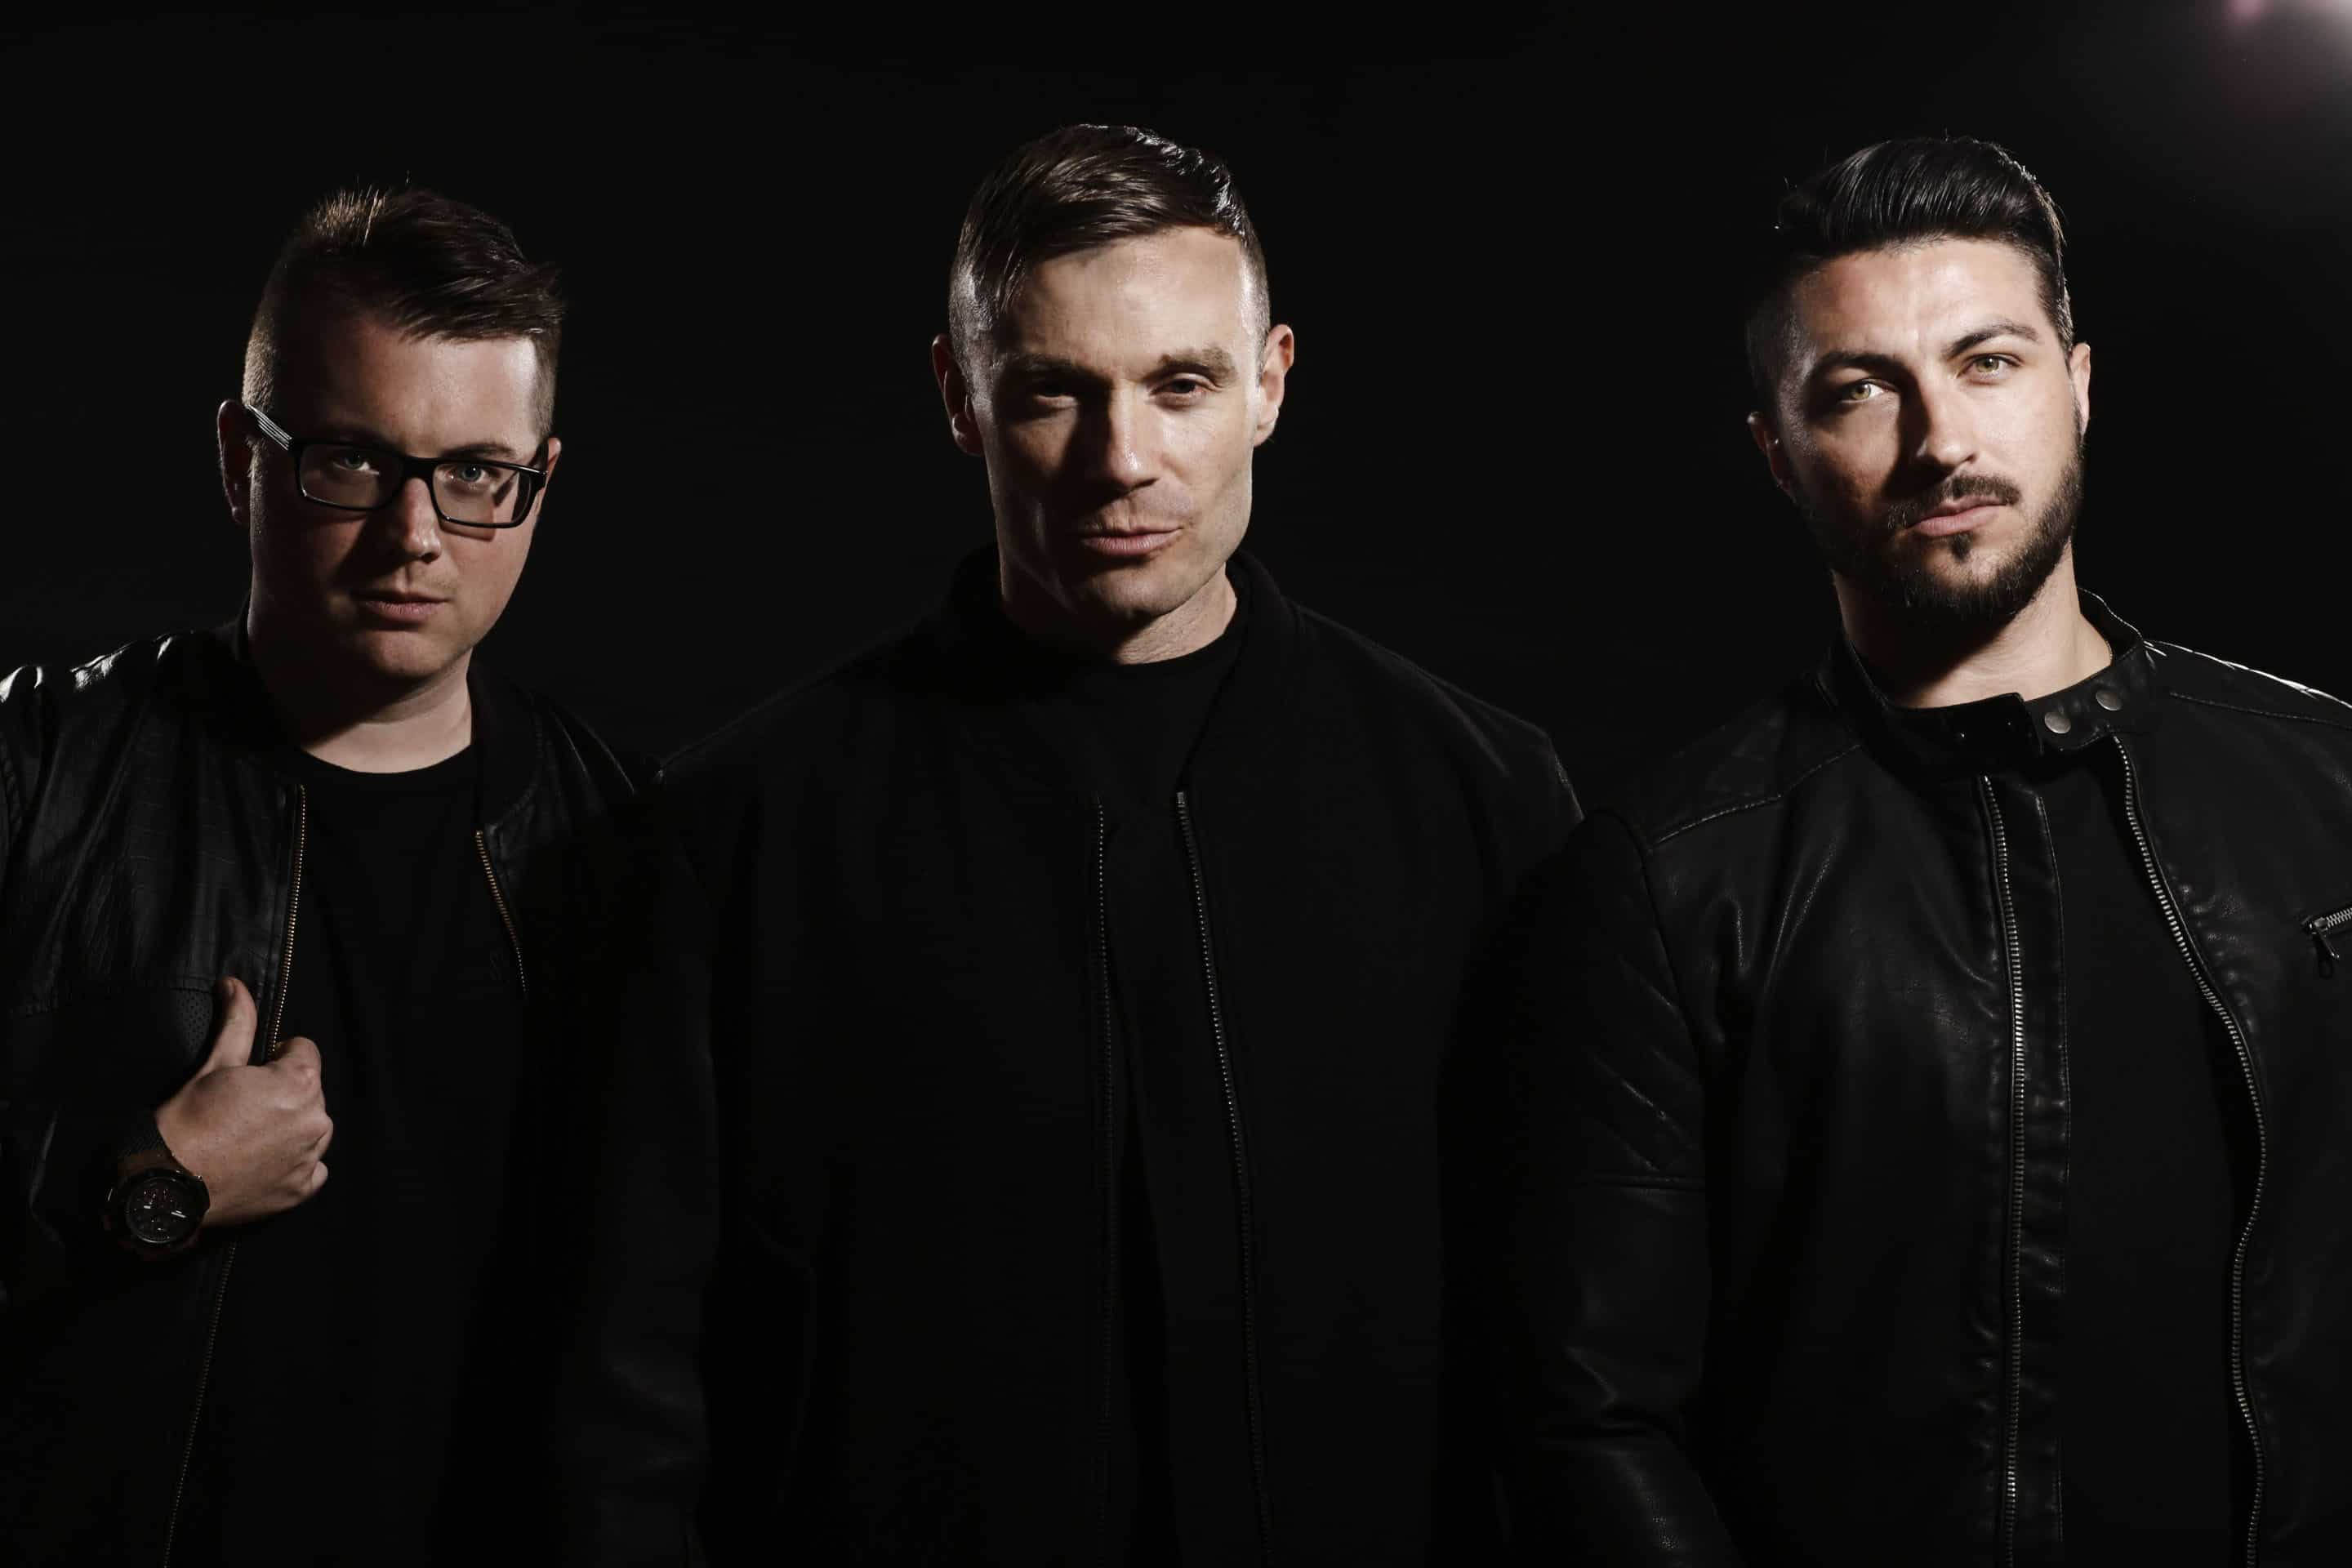 EXCLUSIVE INTERVIEW WITH POWERHOUSE BRITISH TRIO FUTURISTIC POLAR BEARS